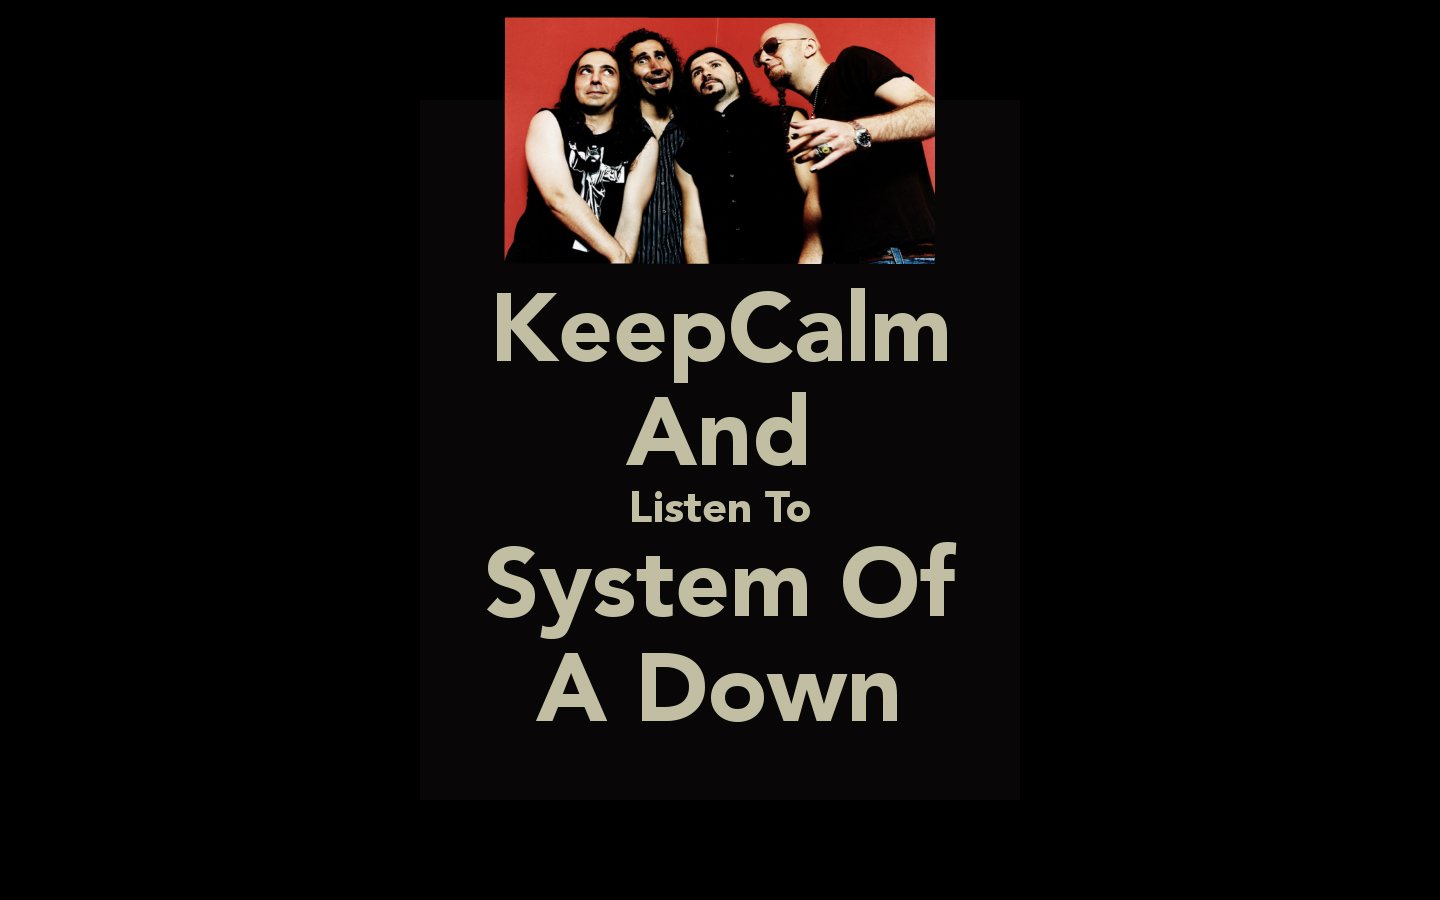 System of A Down Computer Wallpapers Desktop Backgrounds 1440x900 1440x900